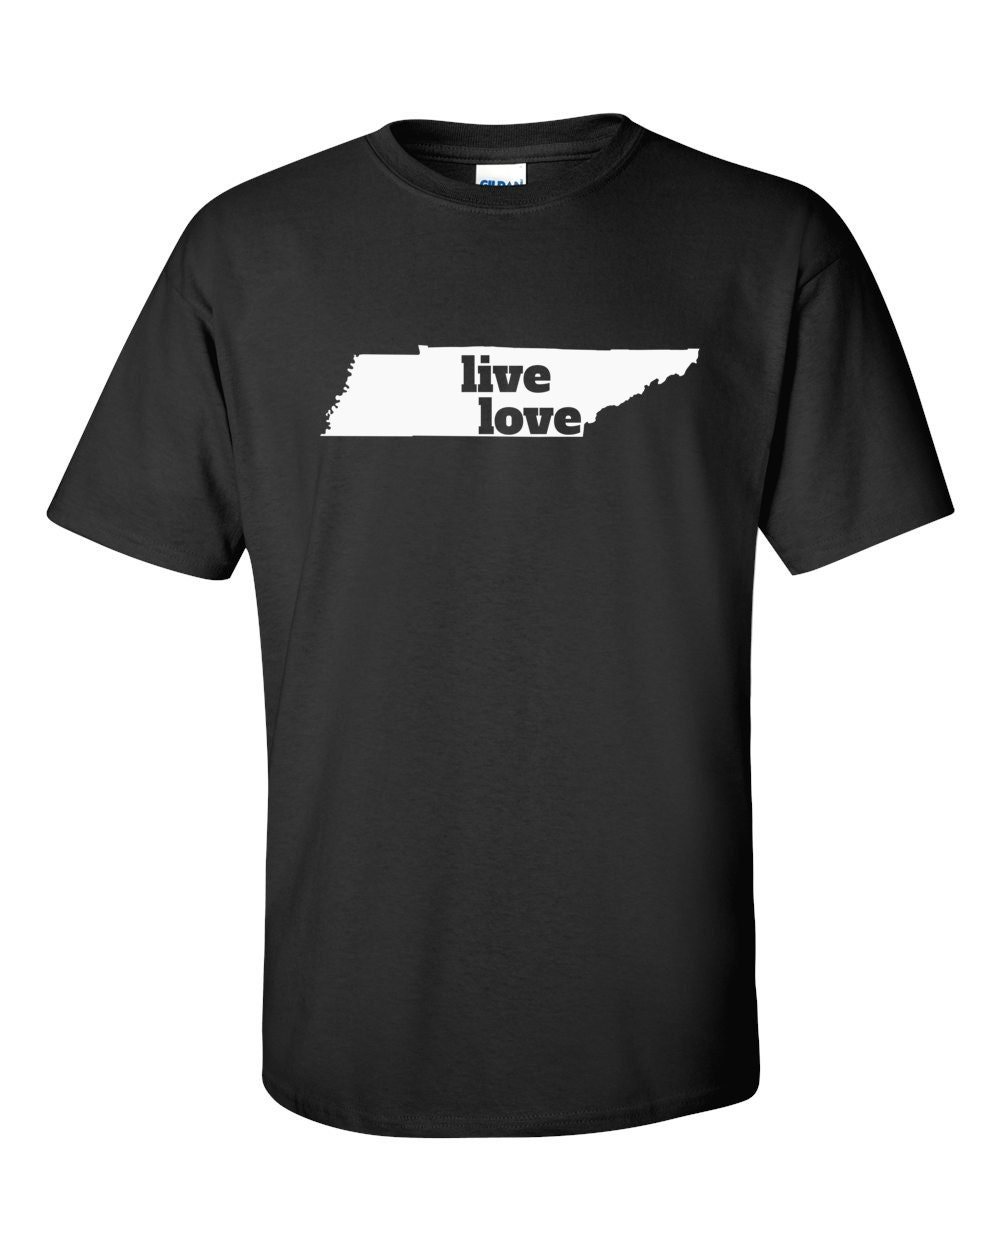 Tennessee T-shirt - Live Love Tennessee - My State Tennessee T-shirt